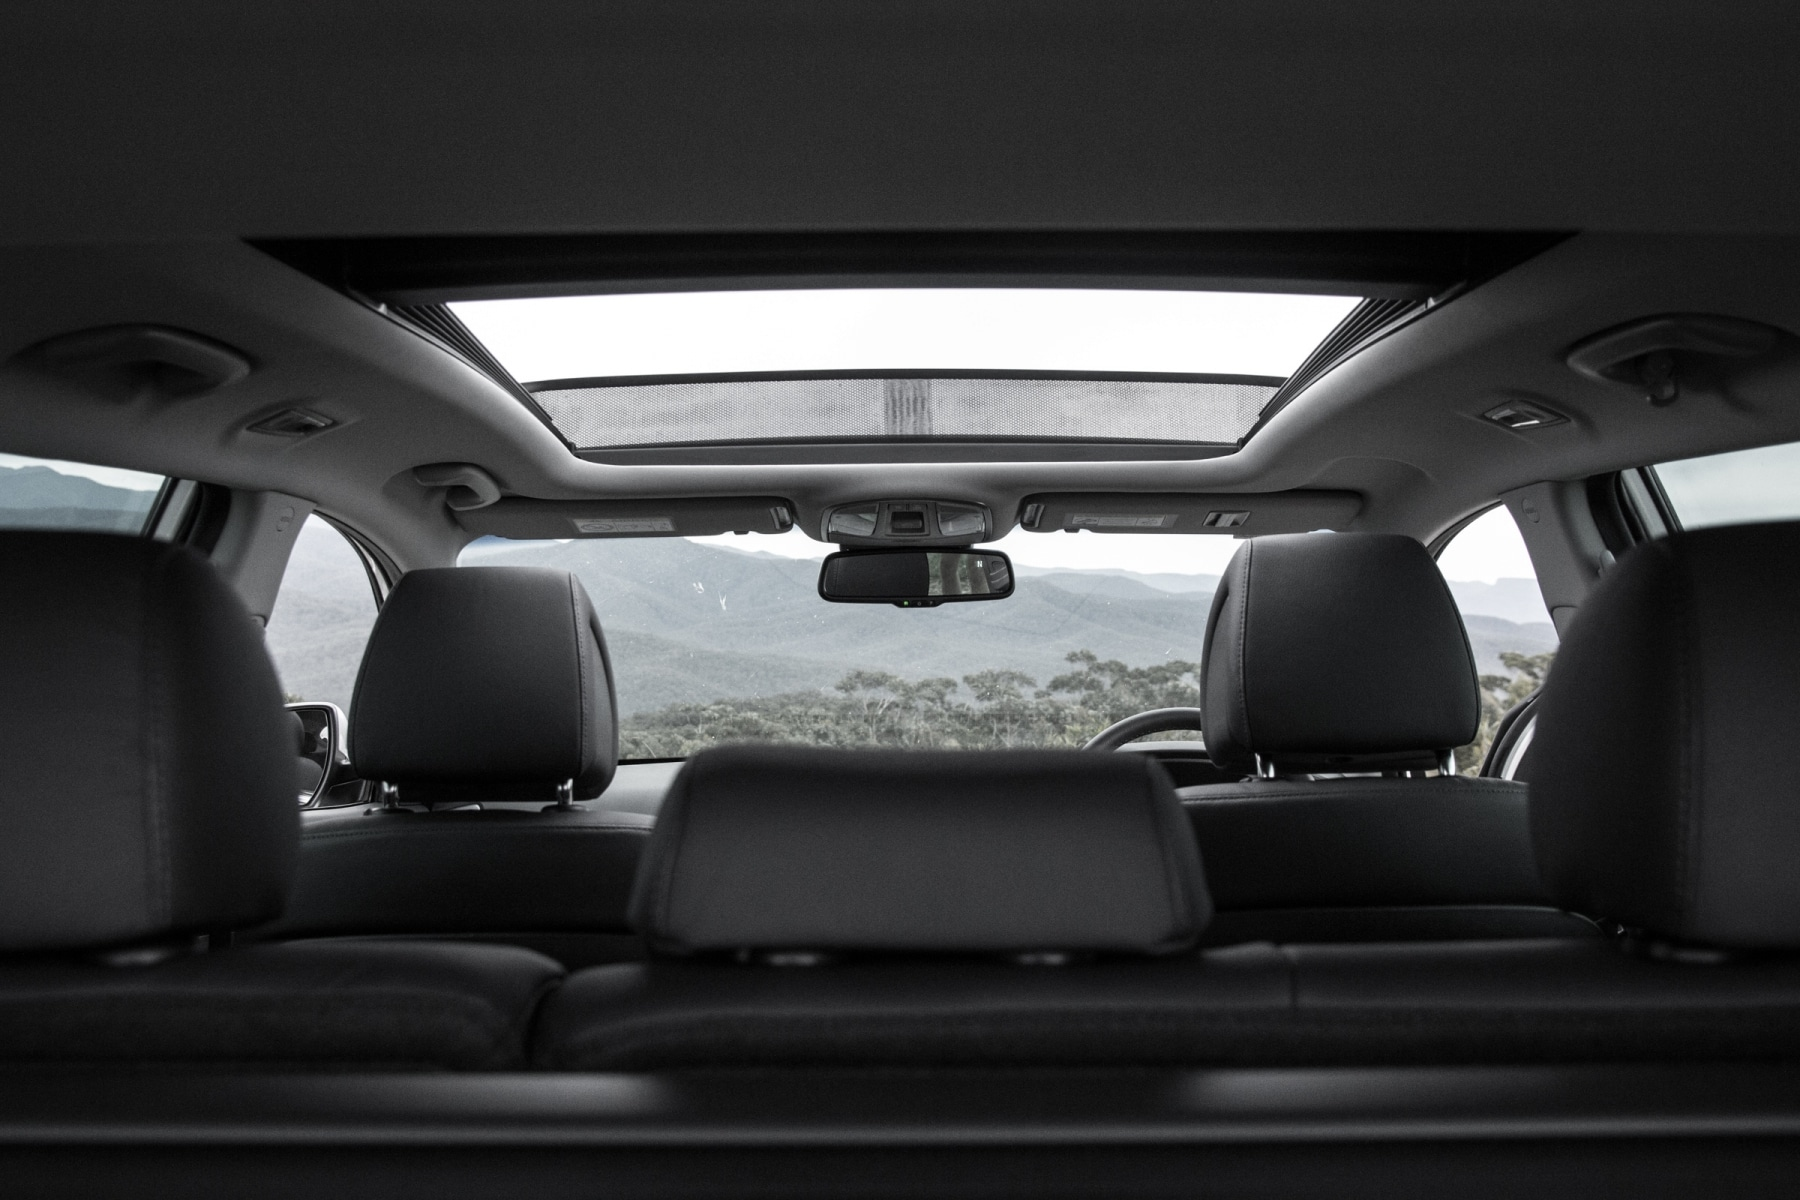 interior of hyundai tucson suv